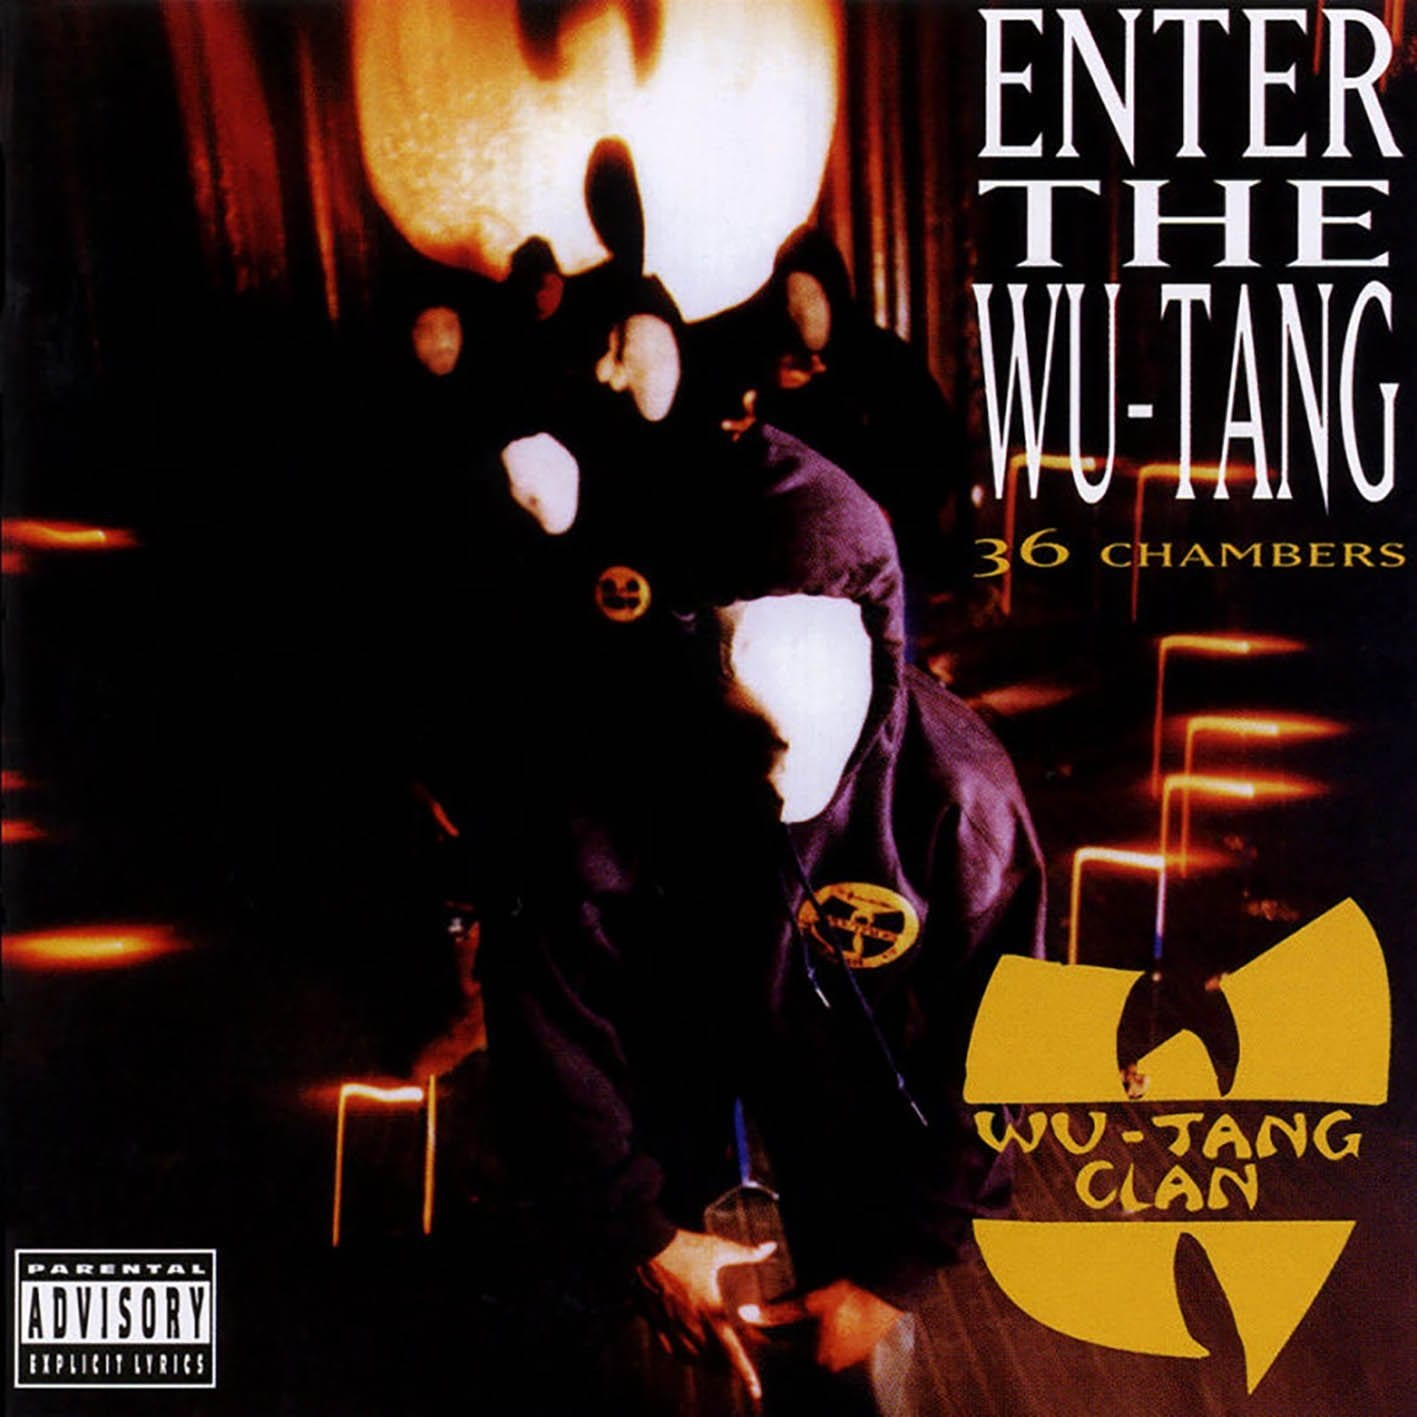 Wu-Tang Clan - Enter The Wu-Tang (36 Chambers) [LP] (Vinyl) - Urban Vinyl | Records, Headphones, and more.